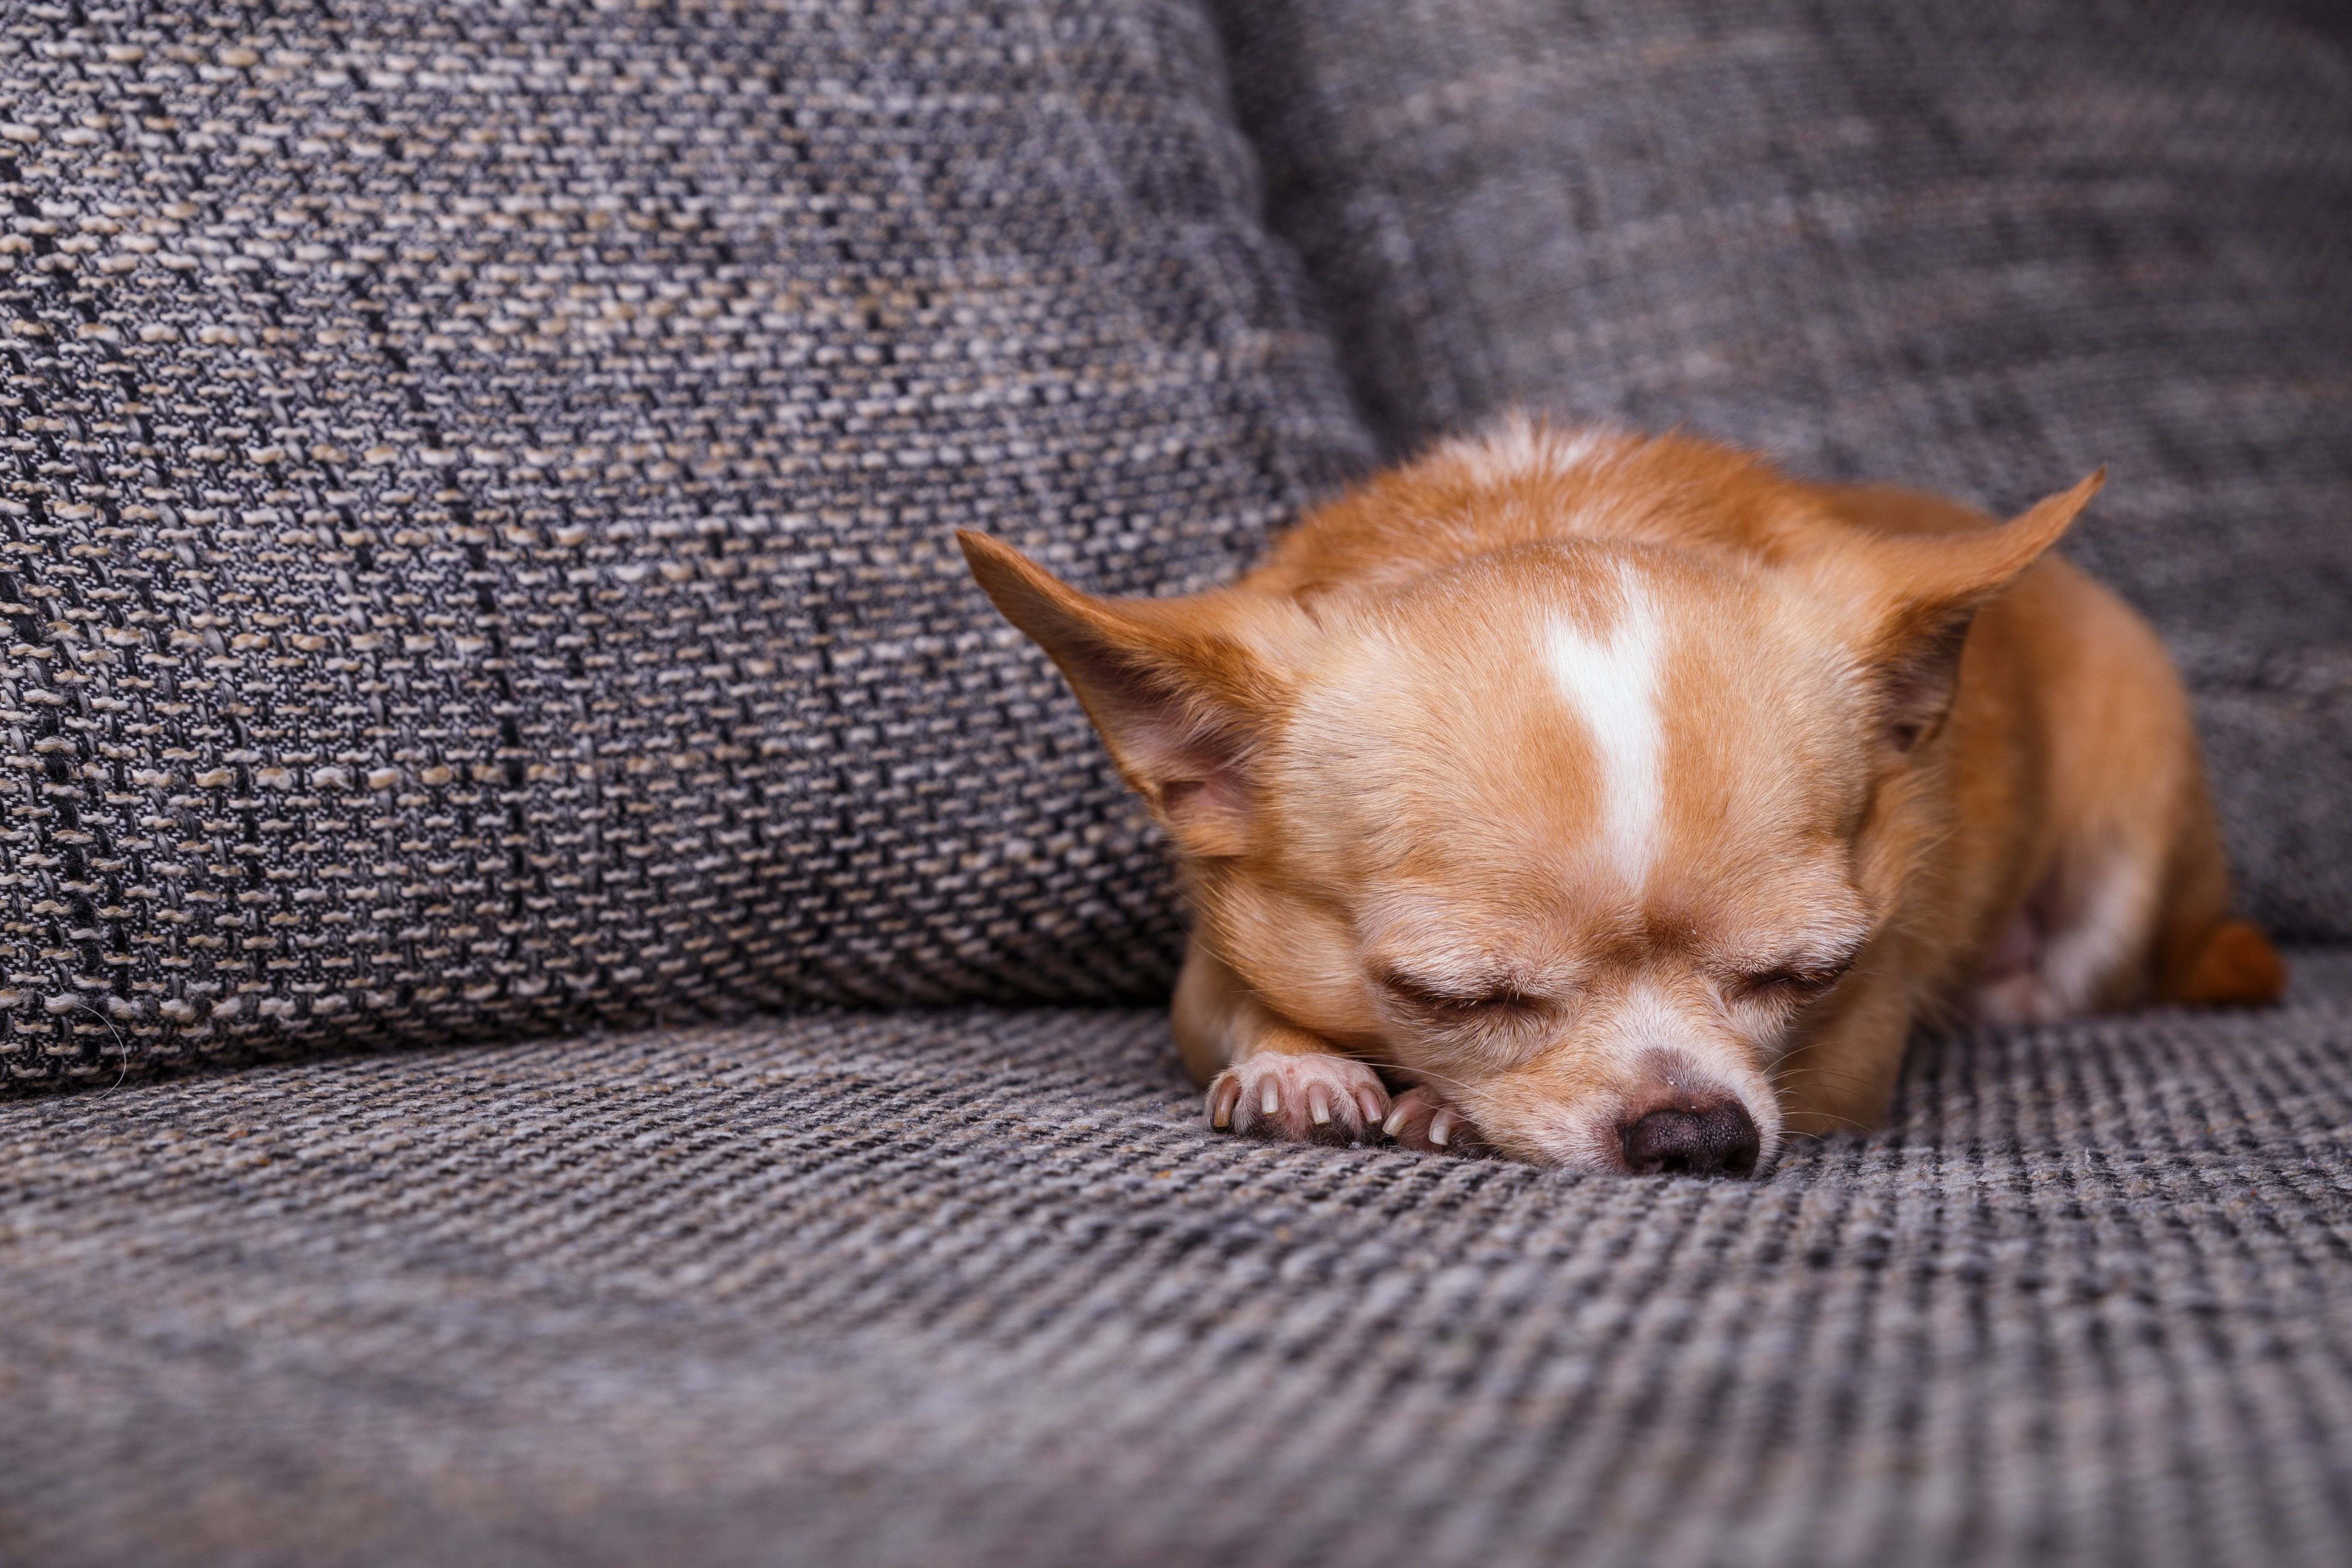 Chihuahua puppy sleep. Adorable dog lying on sofa. Cute looking purebred pet.